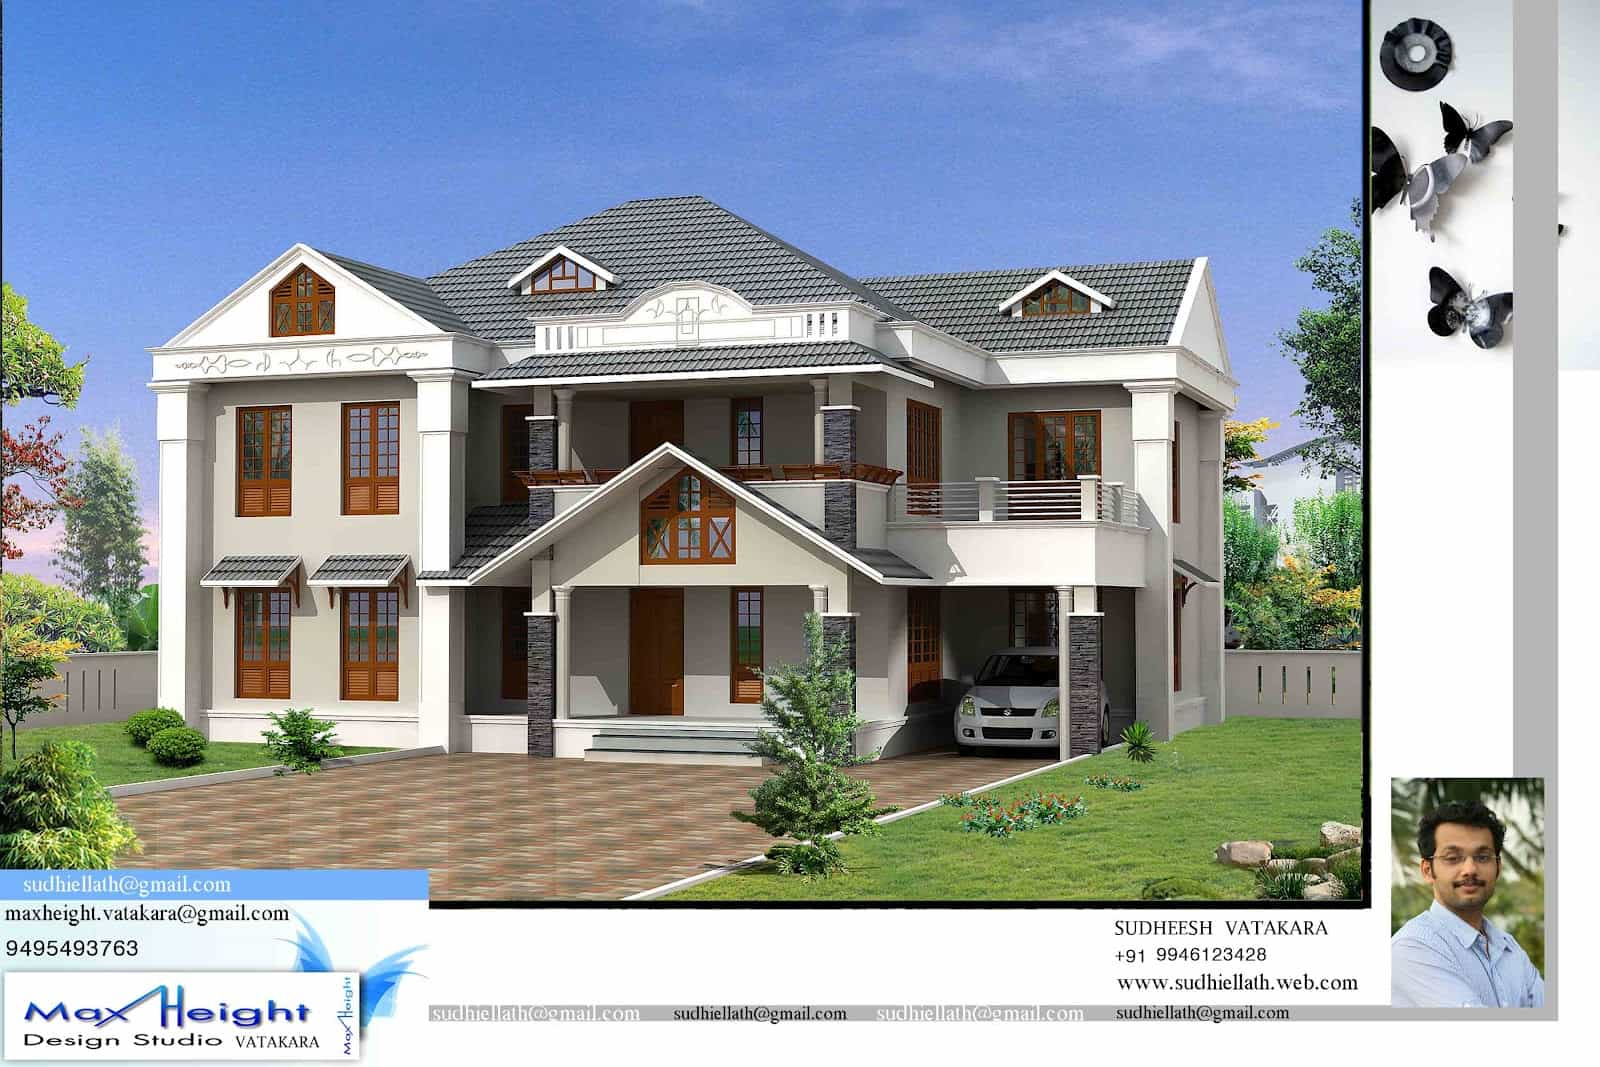 New model houses in kerala photos images for Latest kerala model house plans